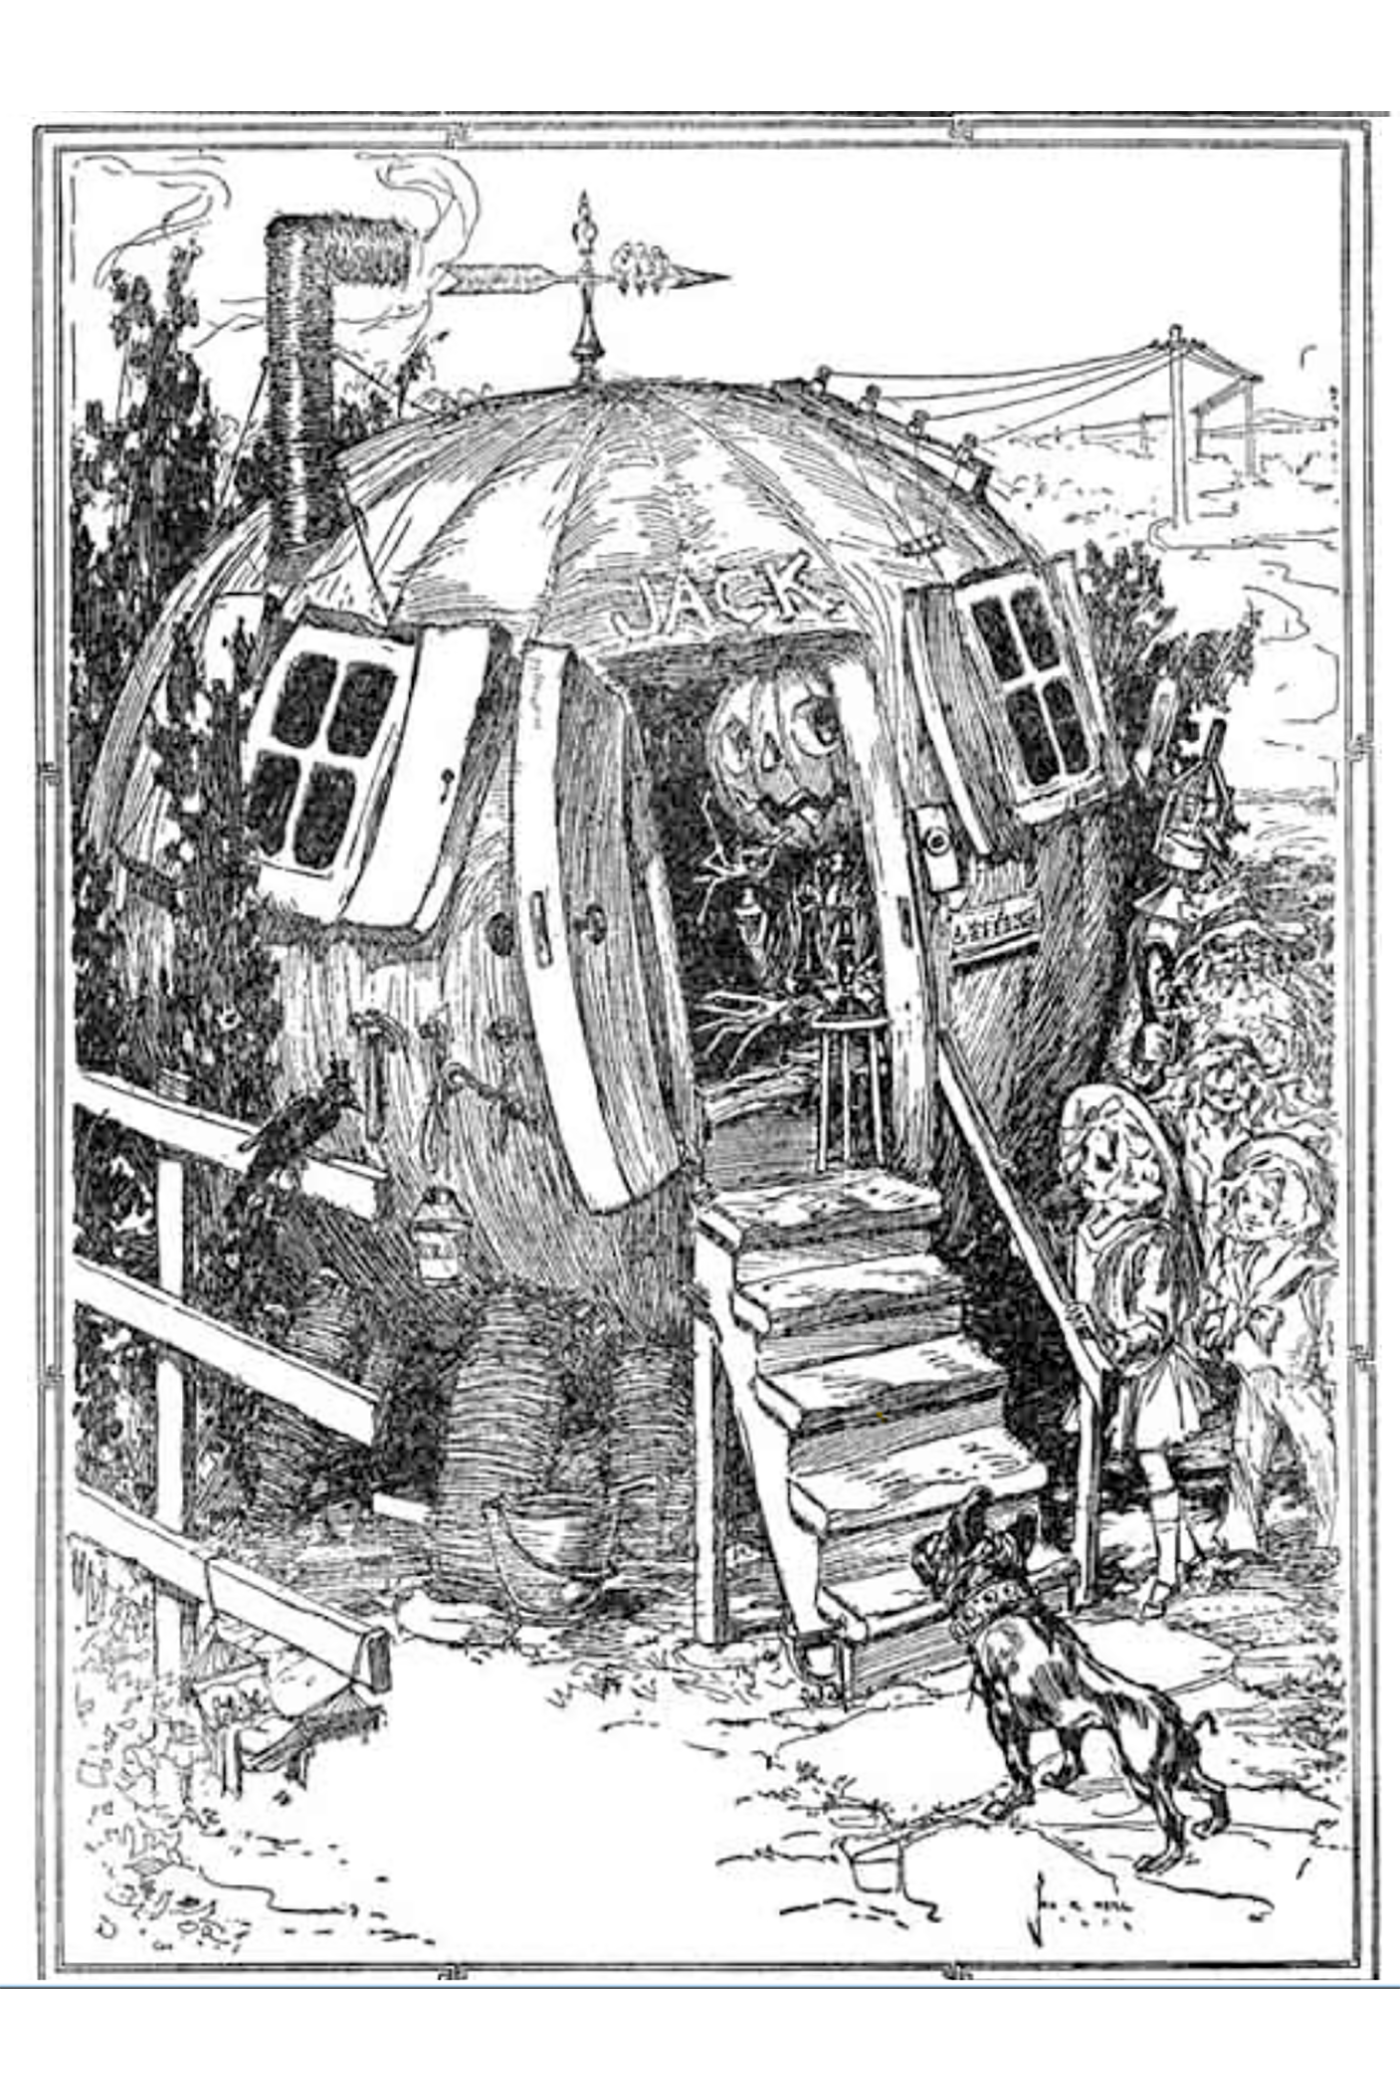 black-and-white pen illustration from The Road to Oz